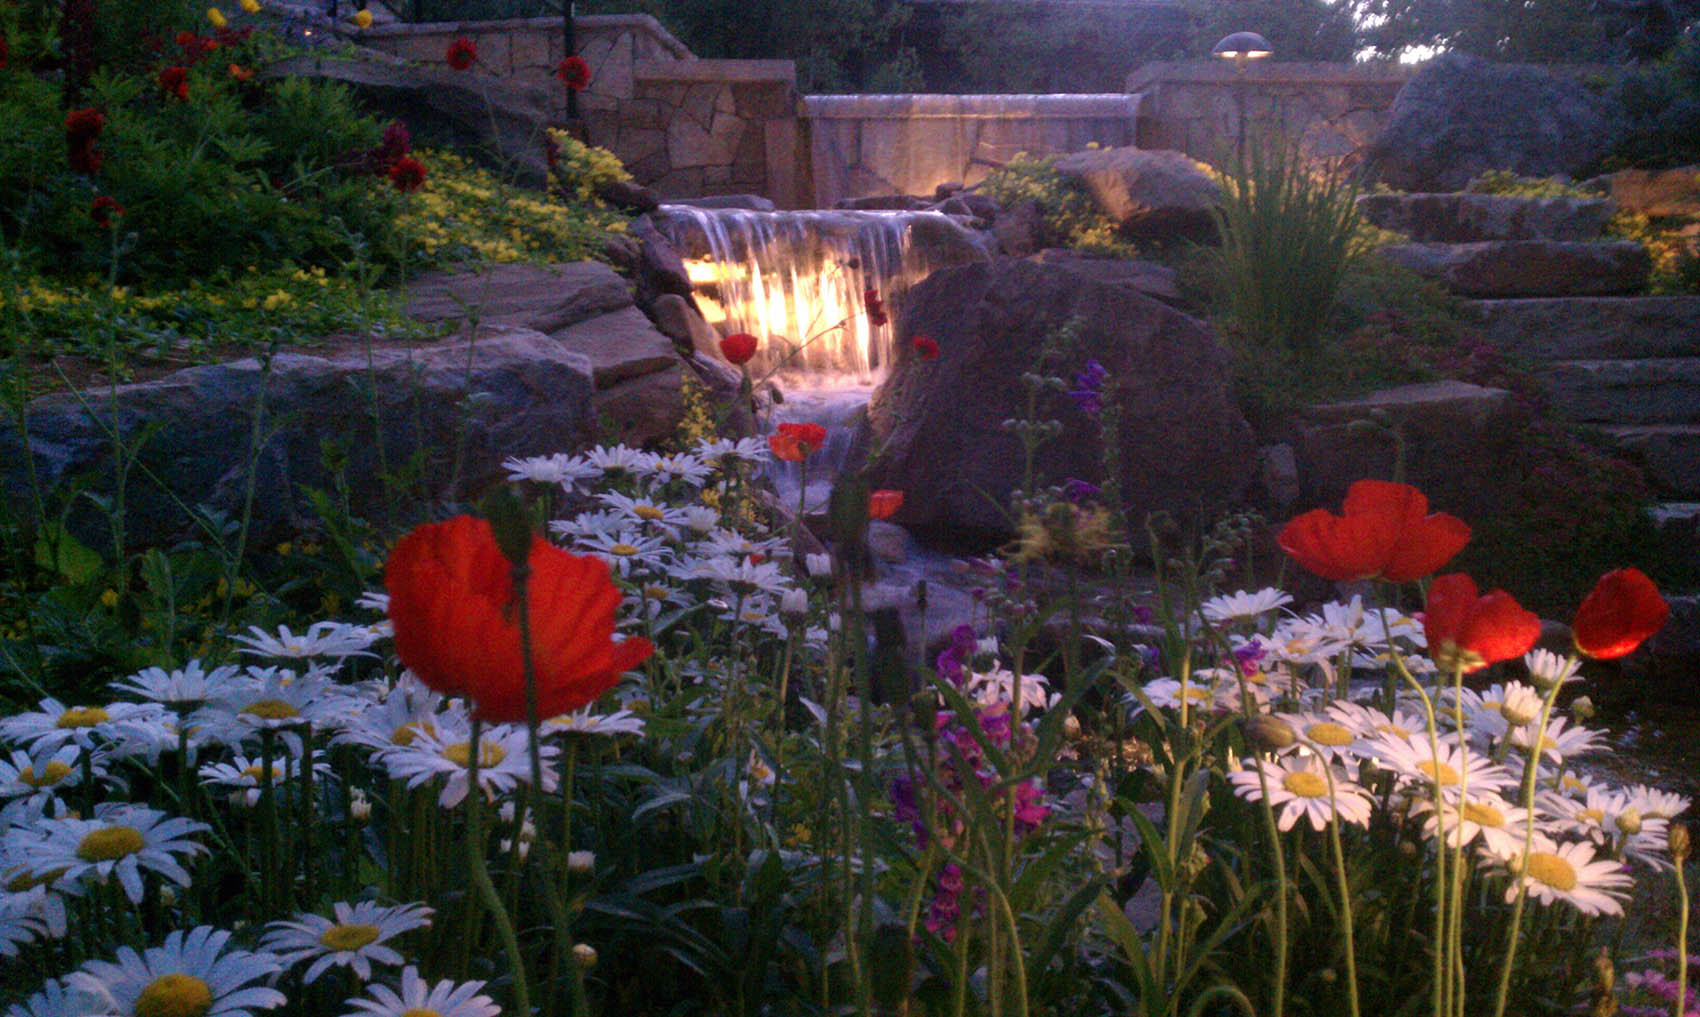 Landscape lighting denver vail eagle co rocky mountain custom there is no better way to enjoy your landscape investment more than the addition of landscape lighting more and more homeowners are creating outdoor living aloadofball Images